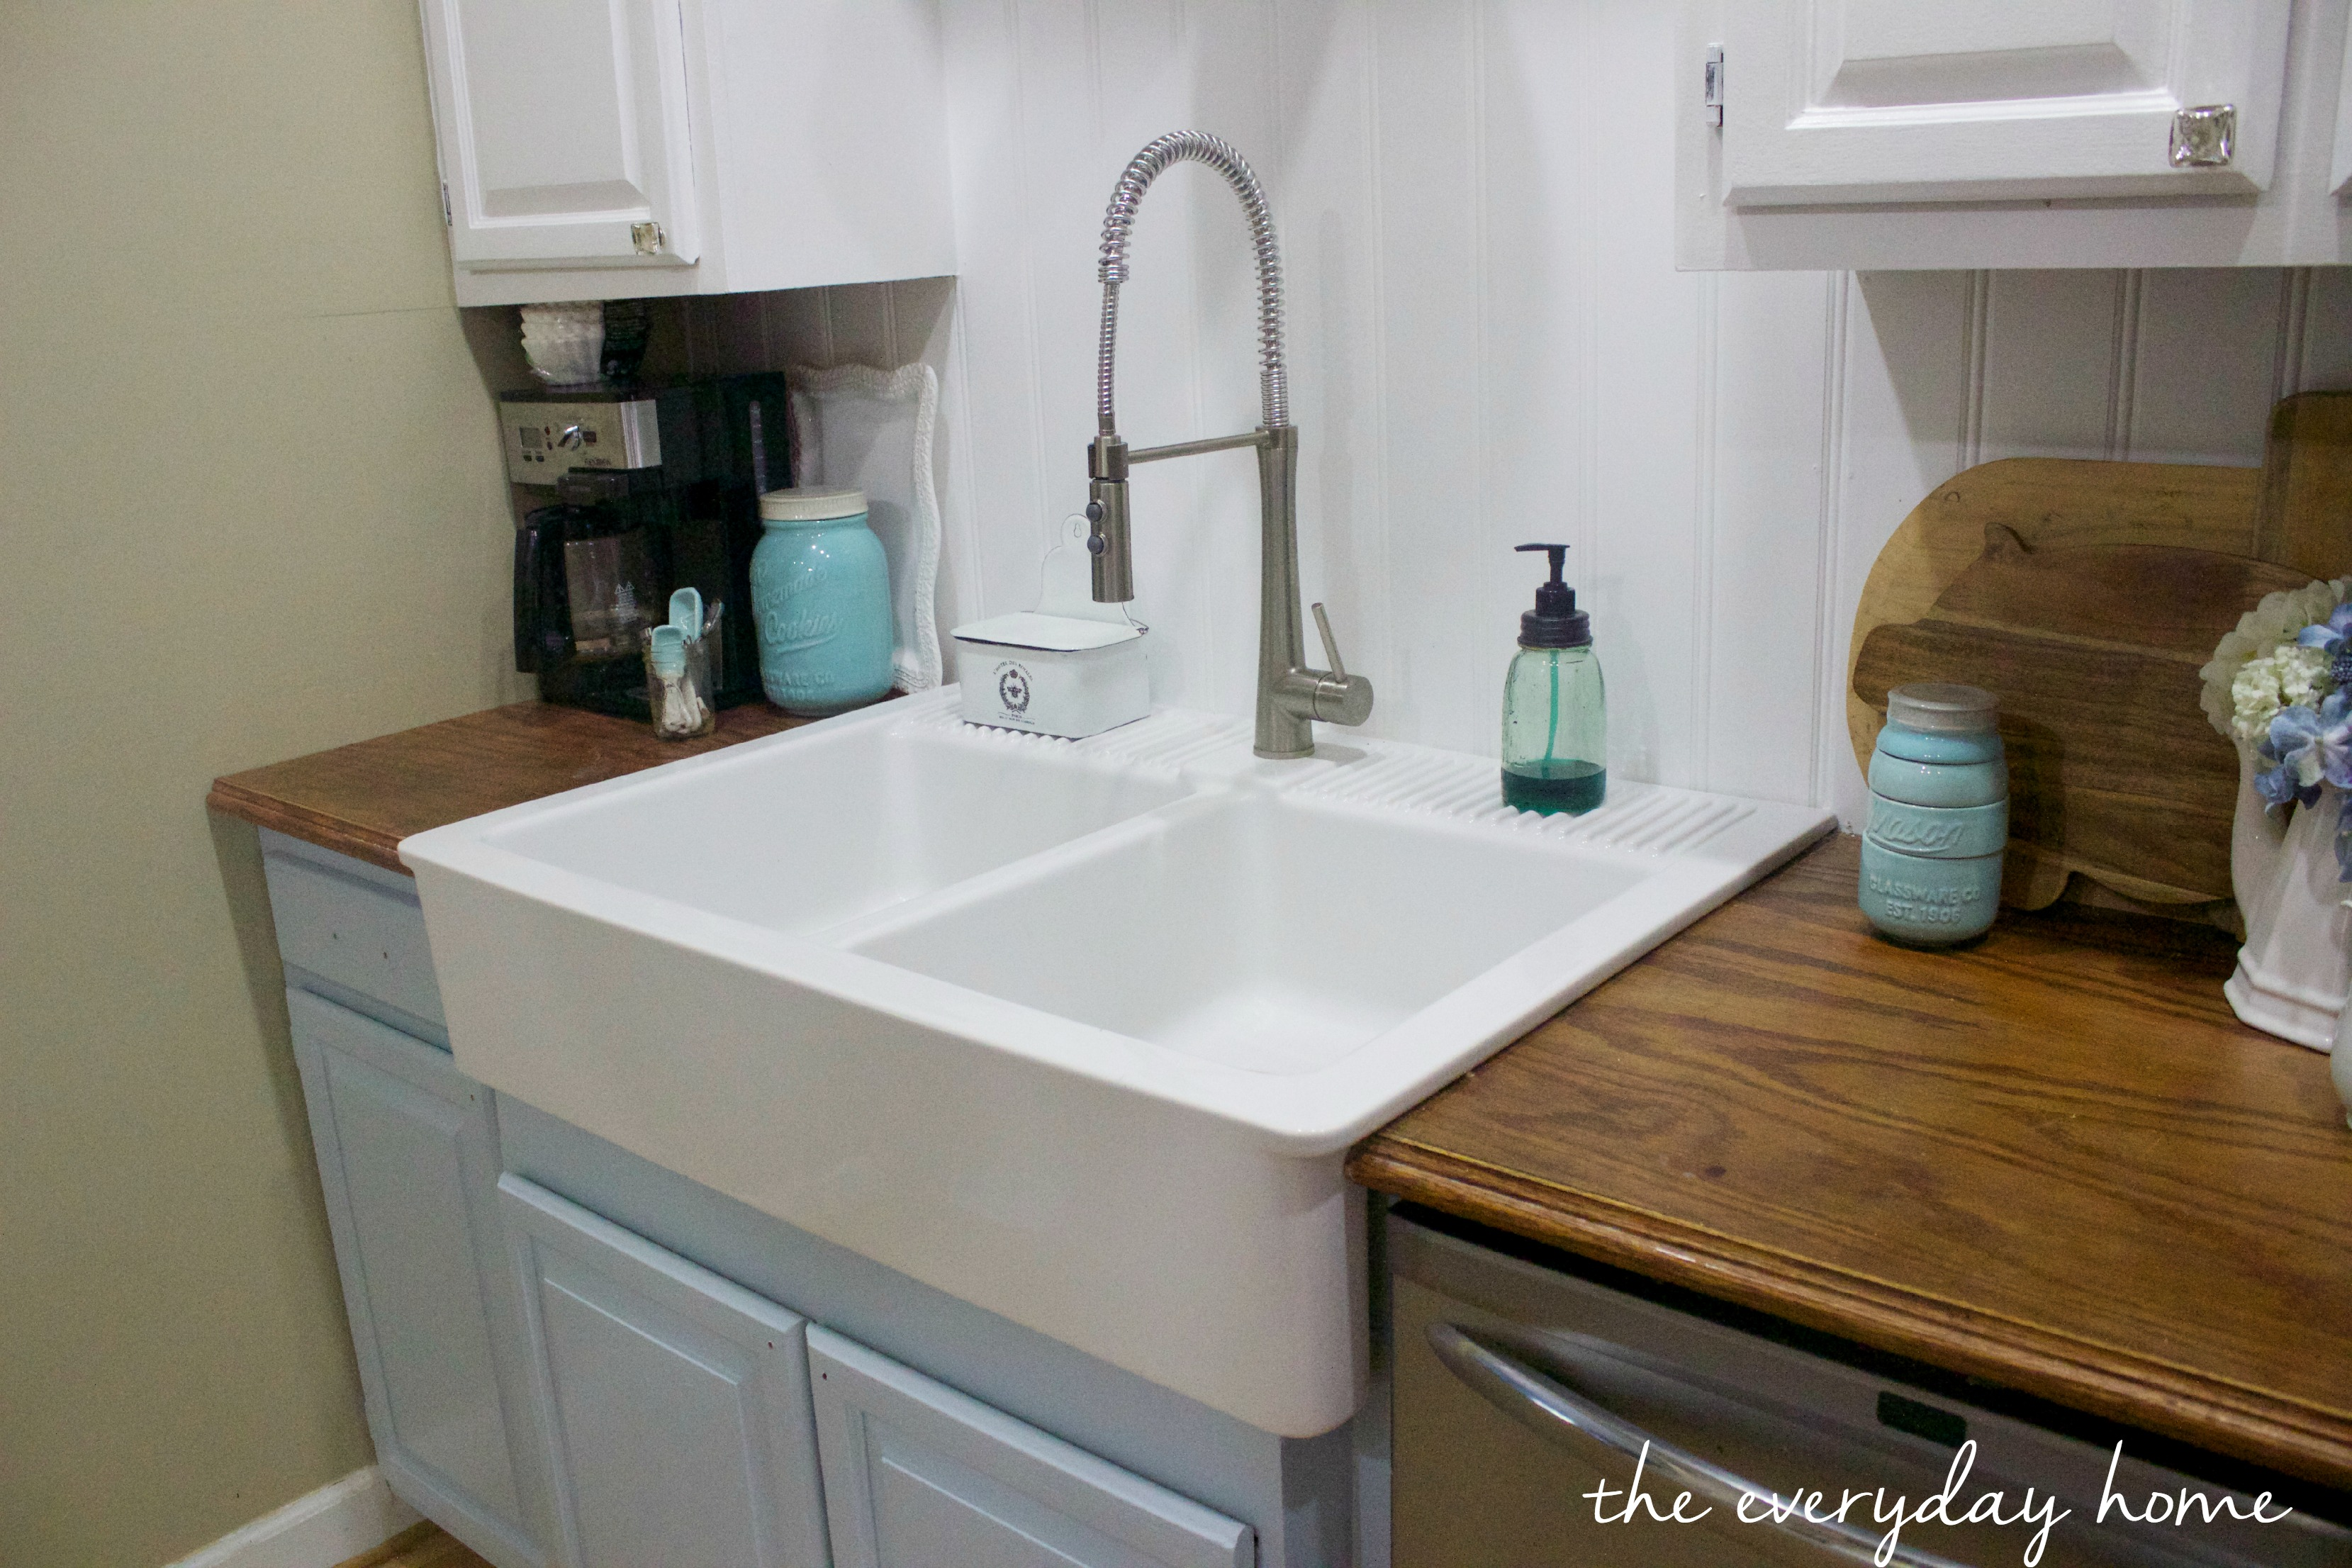 Ikea Farmhouse Sink : Ikea Farmhouse Sink Undermount www.galleryhip.com - The Hippest Pics